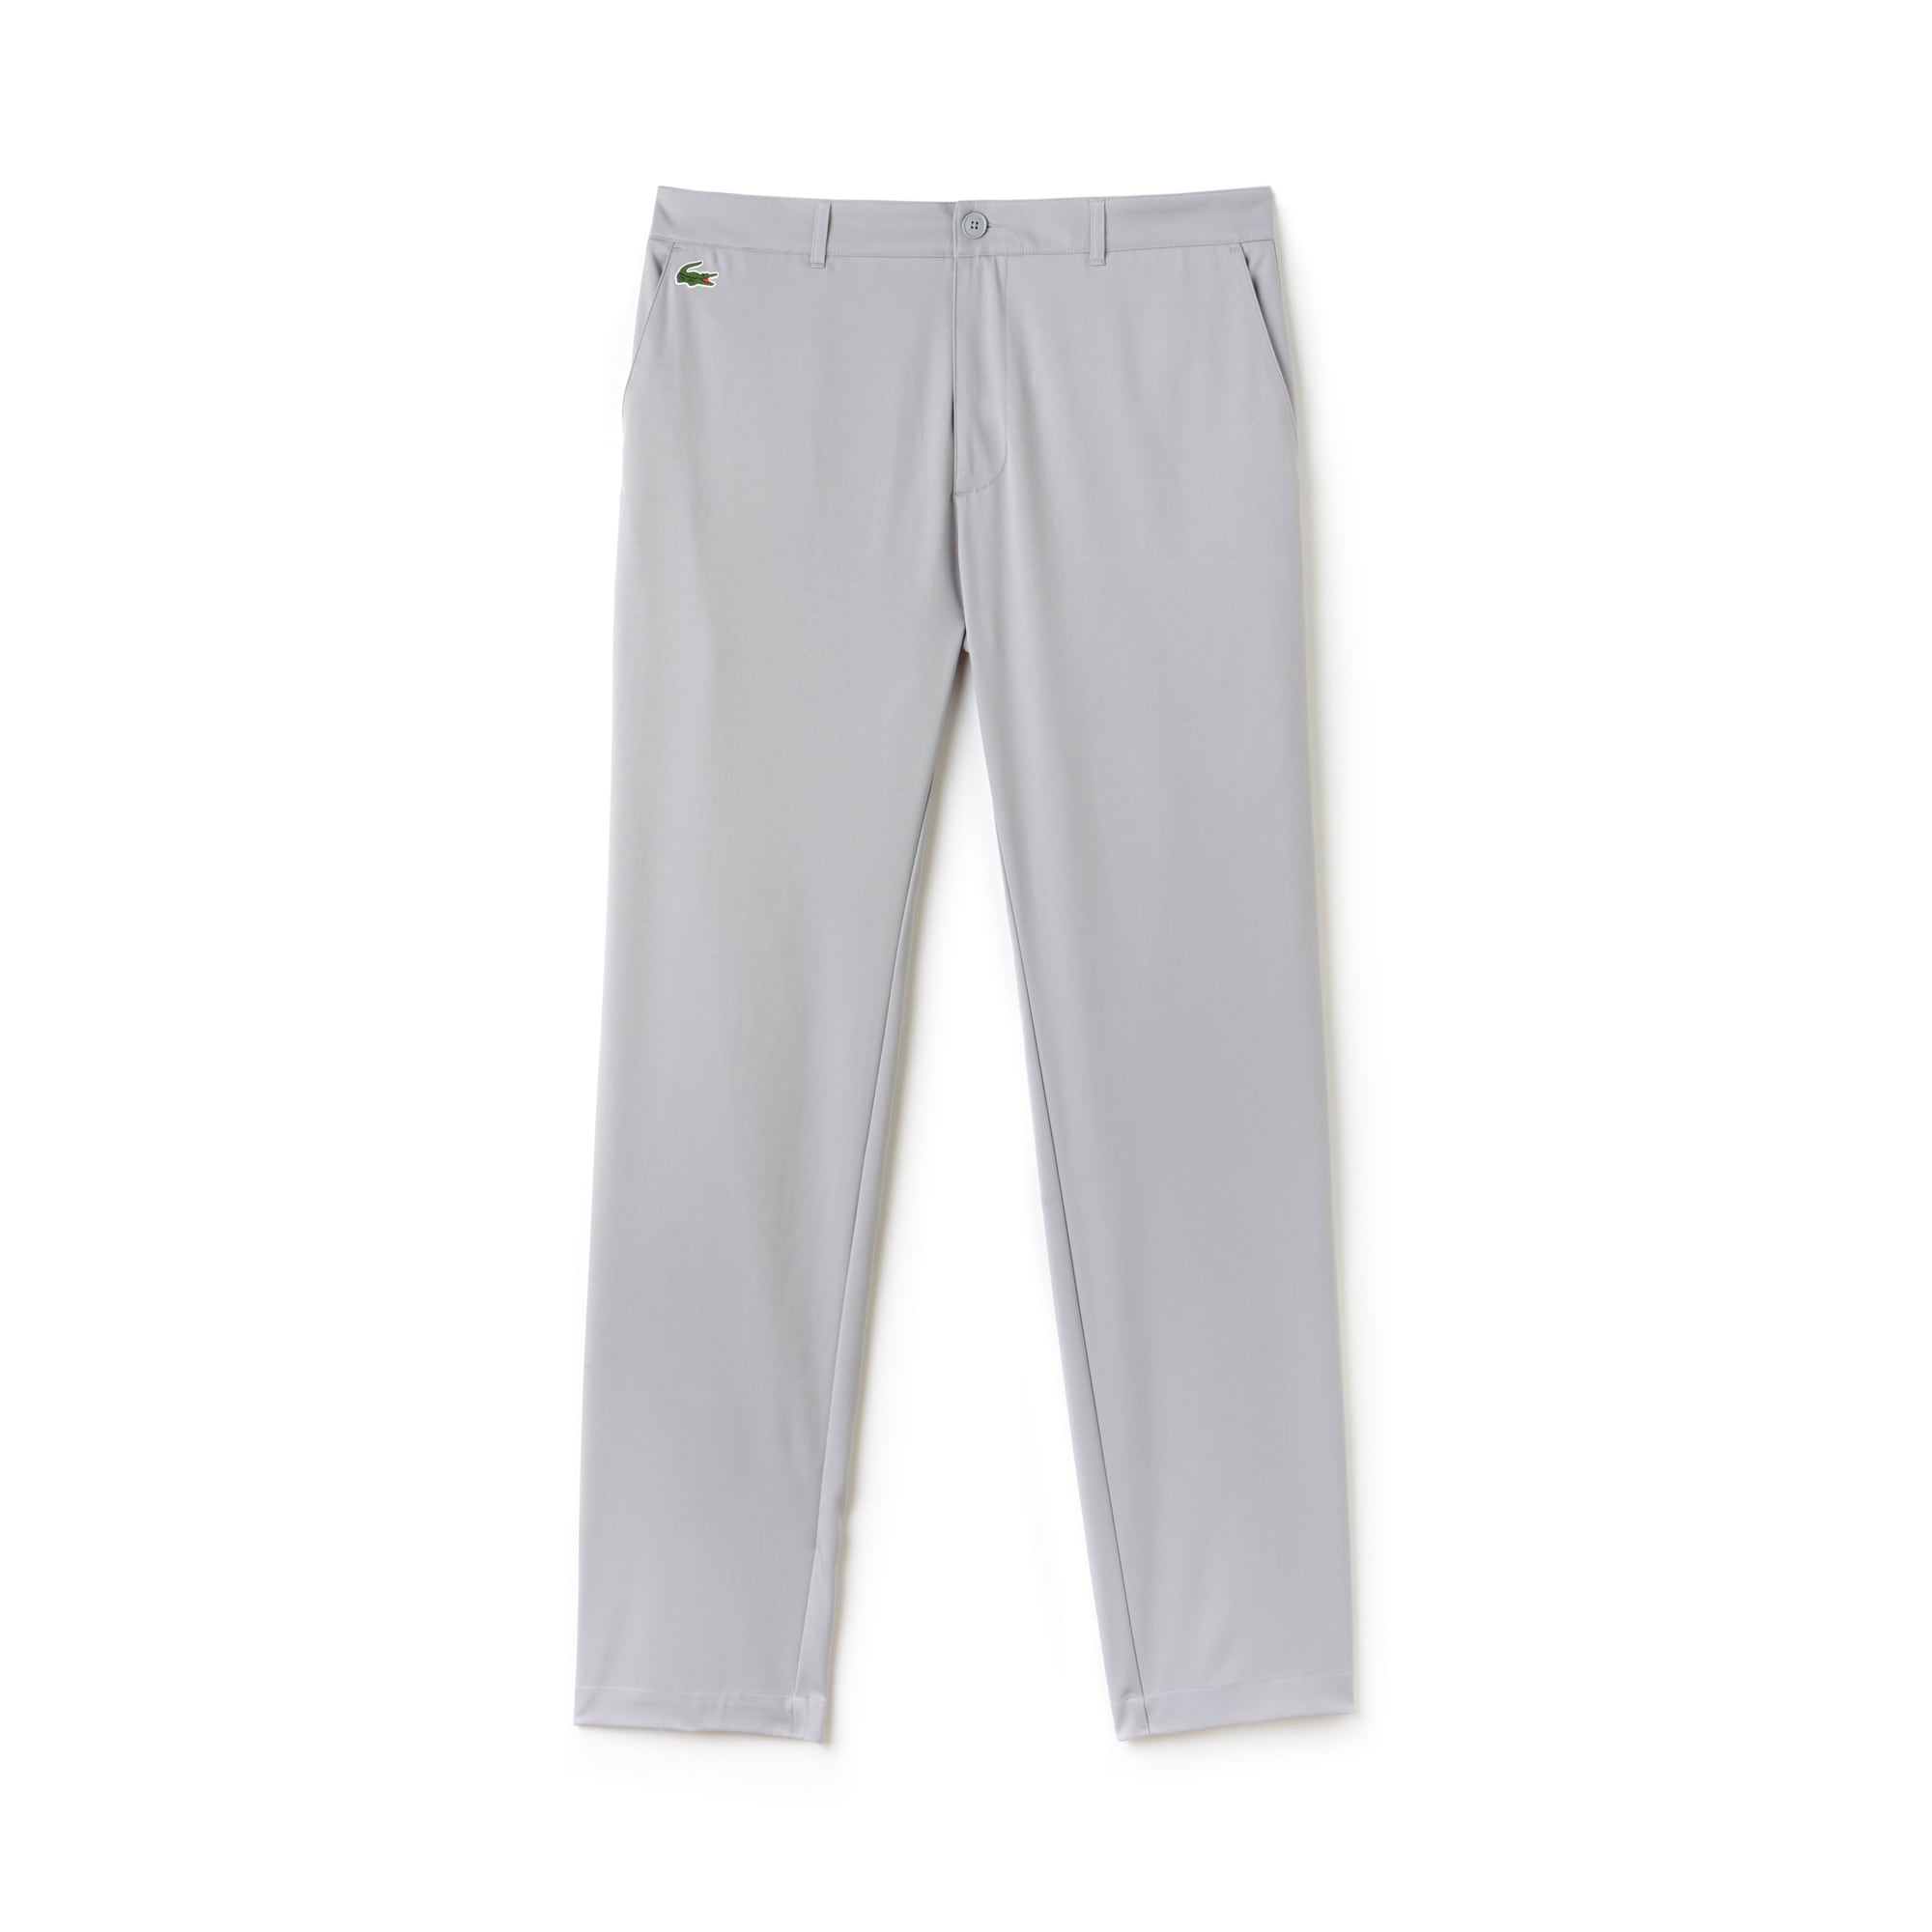 라코스테 Lacoste Mens SPORT Technical Golf Pants,elephant grey